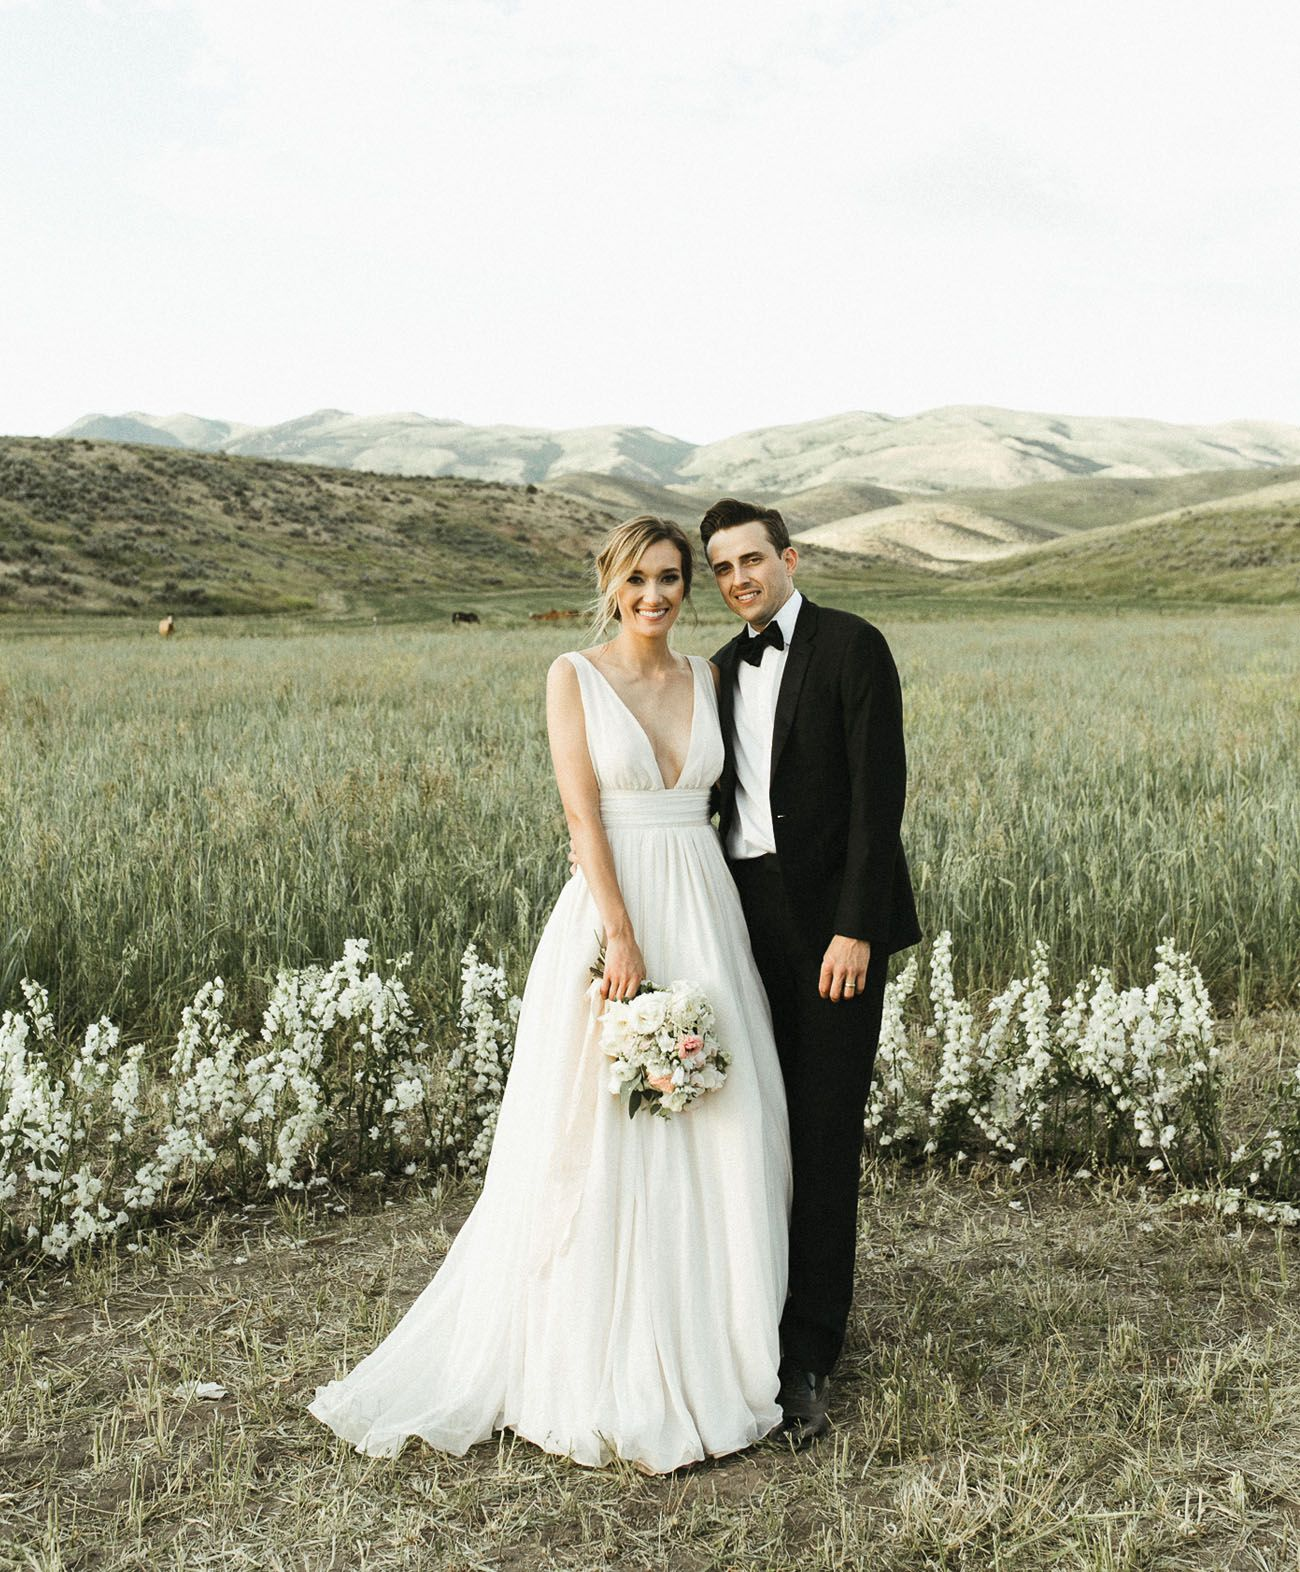 Out in the wilderness modern meets rustic wedding in idaho black